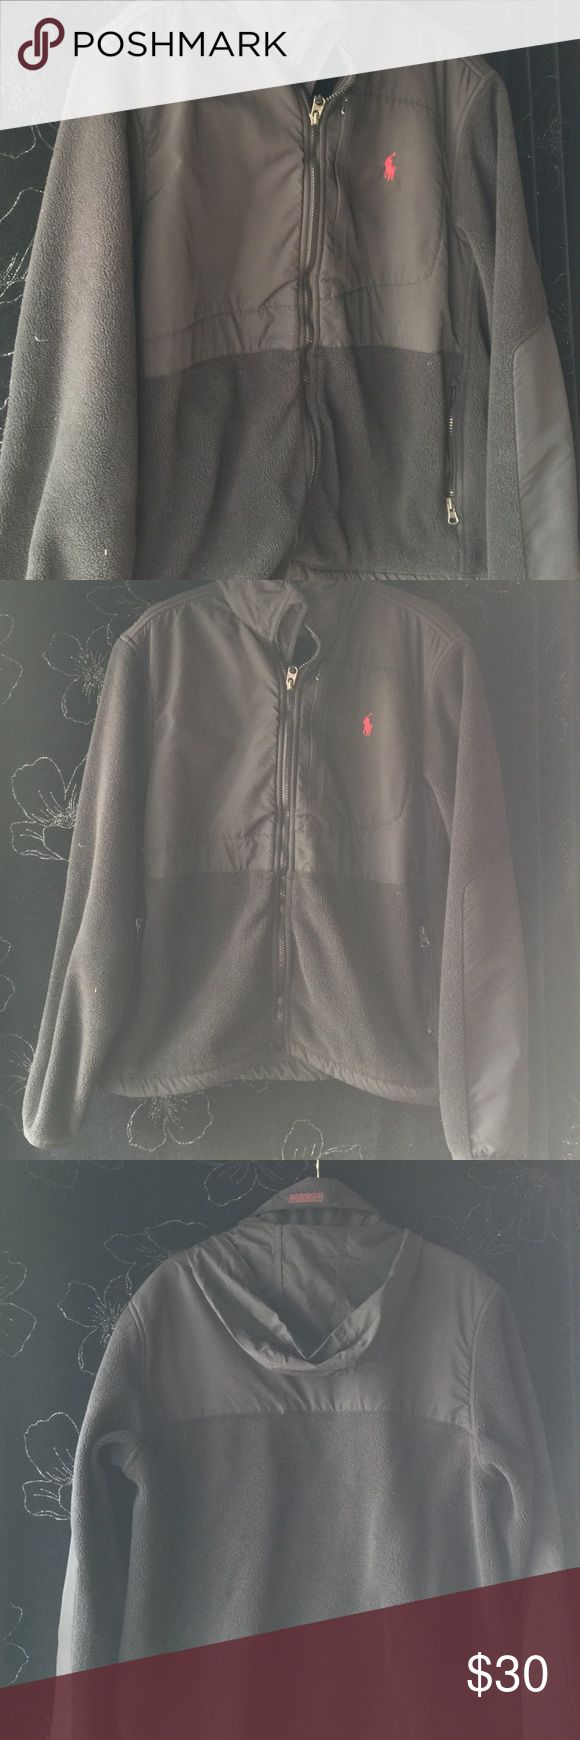 ‼️Polo by Ralph Lauren Fleece Jacket for sale It's fleece season. This beloved jacket is soft and in good condition except the zipper becomes slightly wavy.  Have worn it one winter straight on its own or as a middle layer to bring that cozy comfort to the coldest winter days. I do take offers. Polo by Ralph Lauren Jackets & Coats